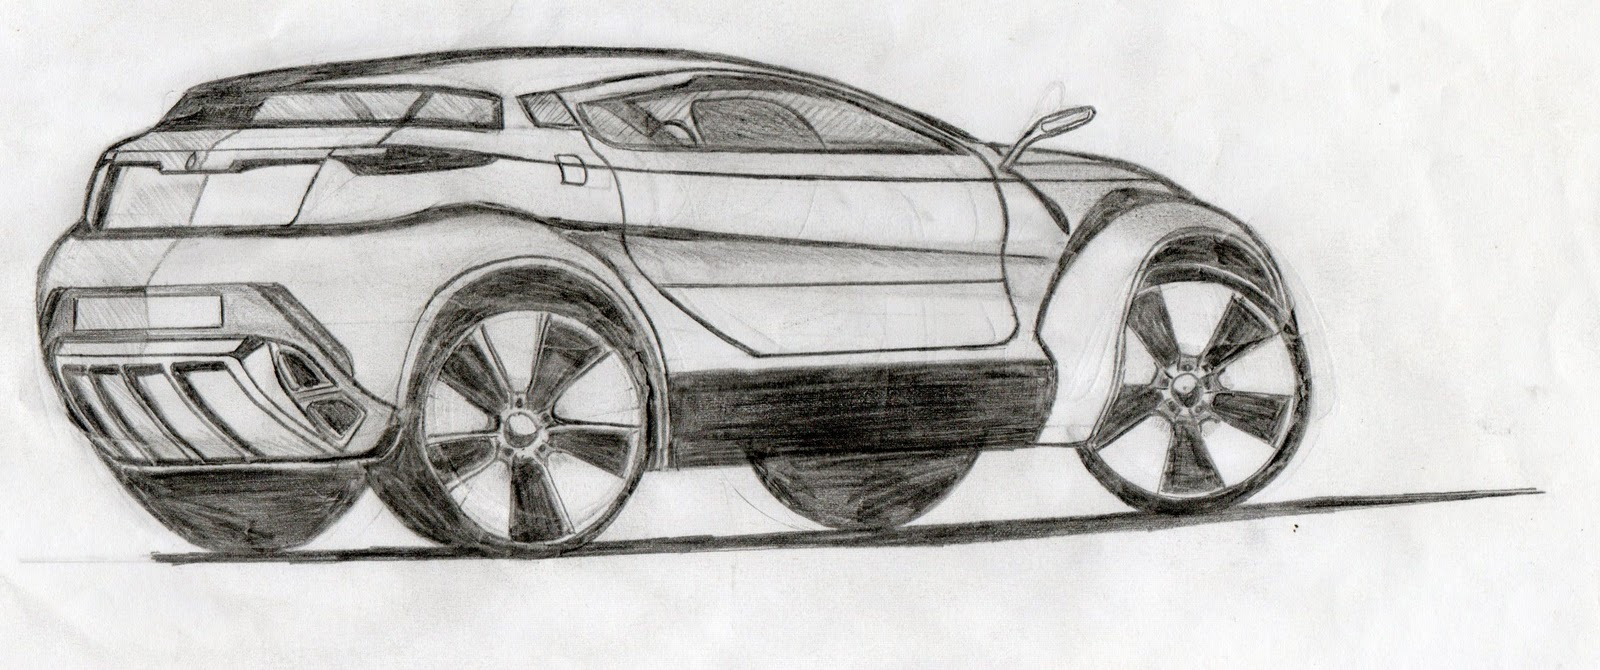 khalfi oussama design: some of my car sketches